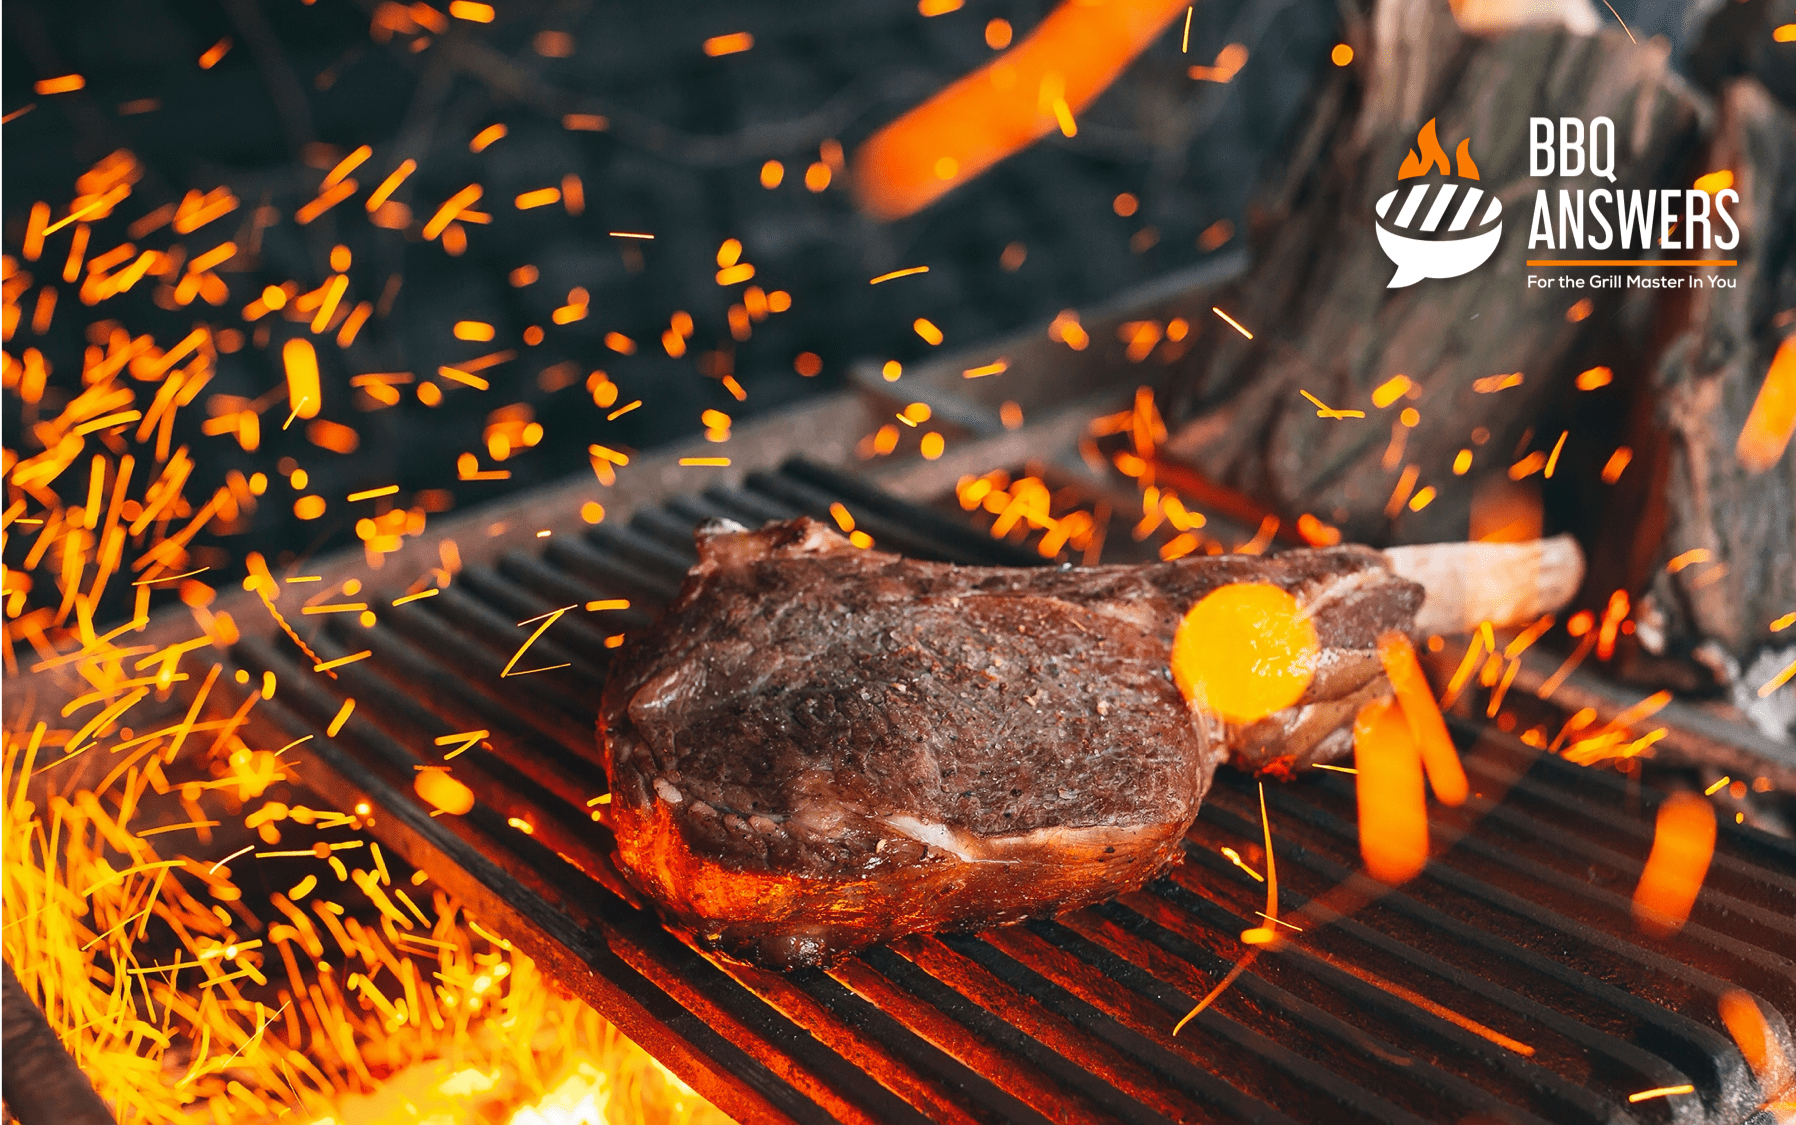 Grill Grates Best Material   BBQanswers